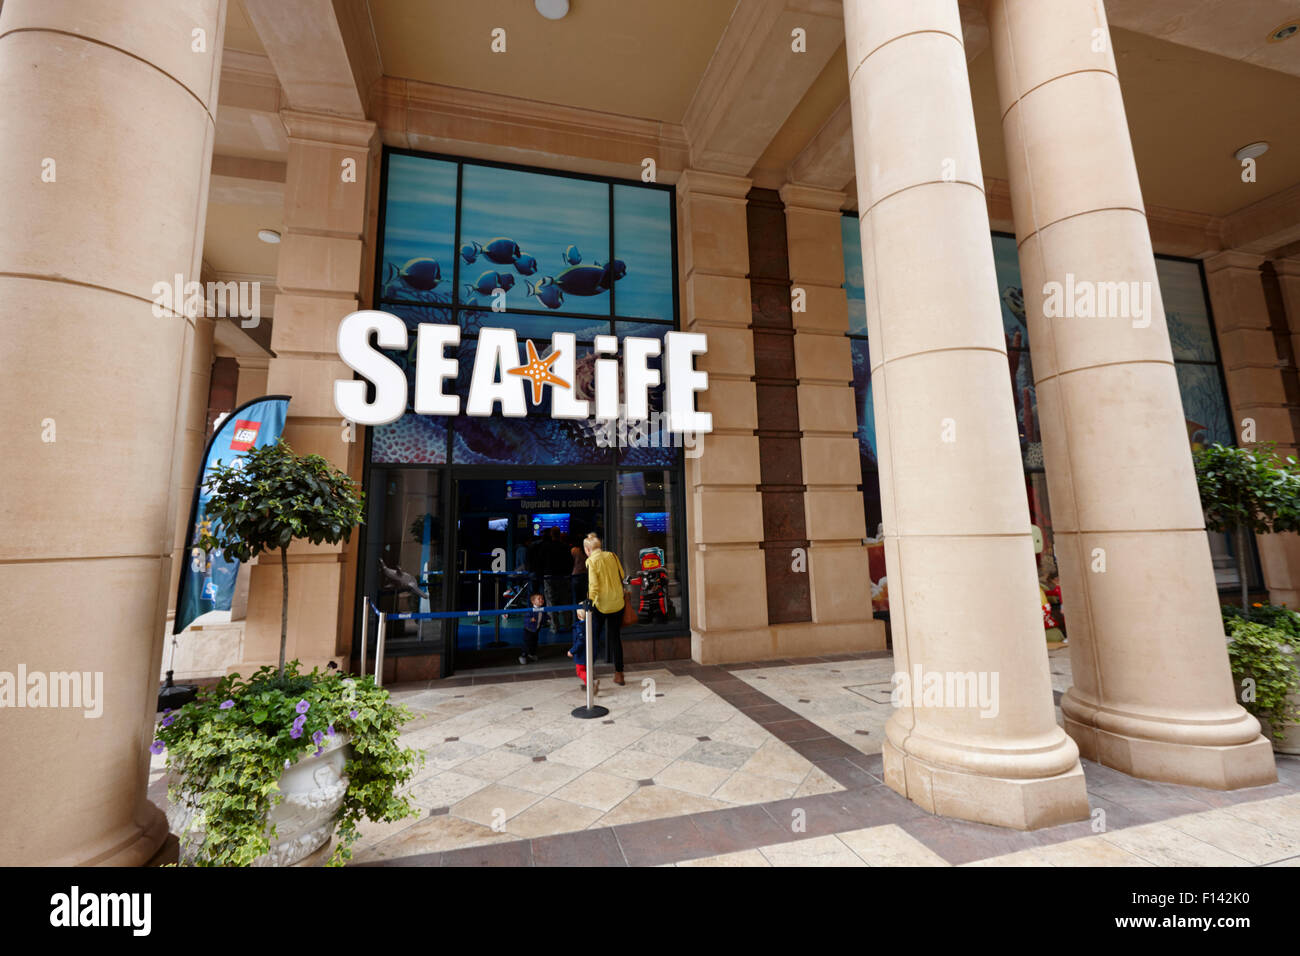 sea life centre at barton square section of the trafford centre Manchester uk Stock Photo